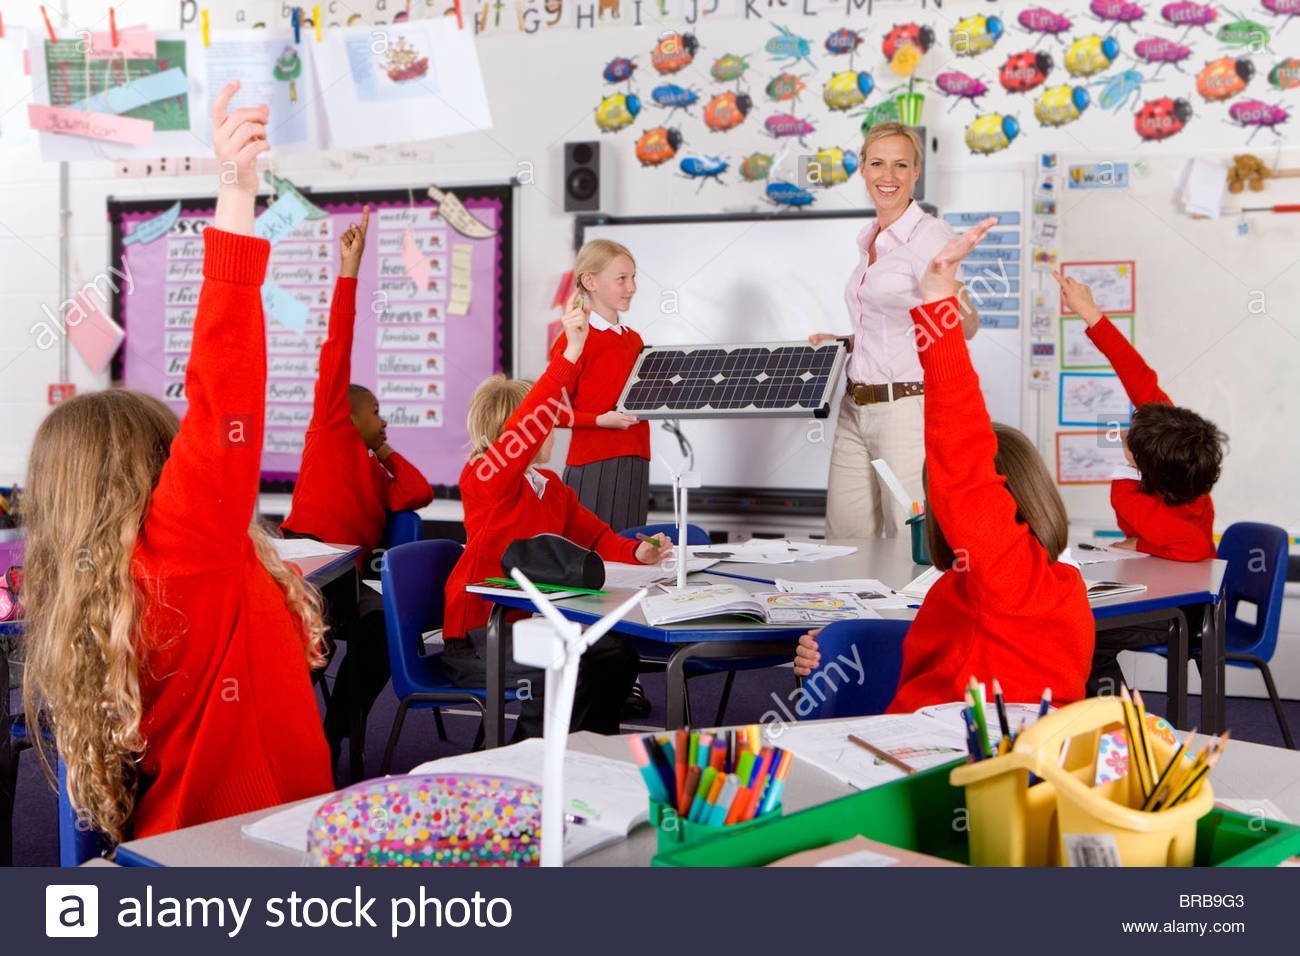 School children answering questions about wind turbines in classroom - Stock Image